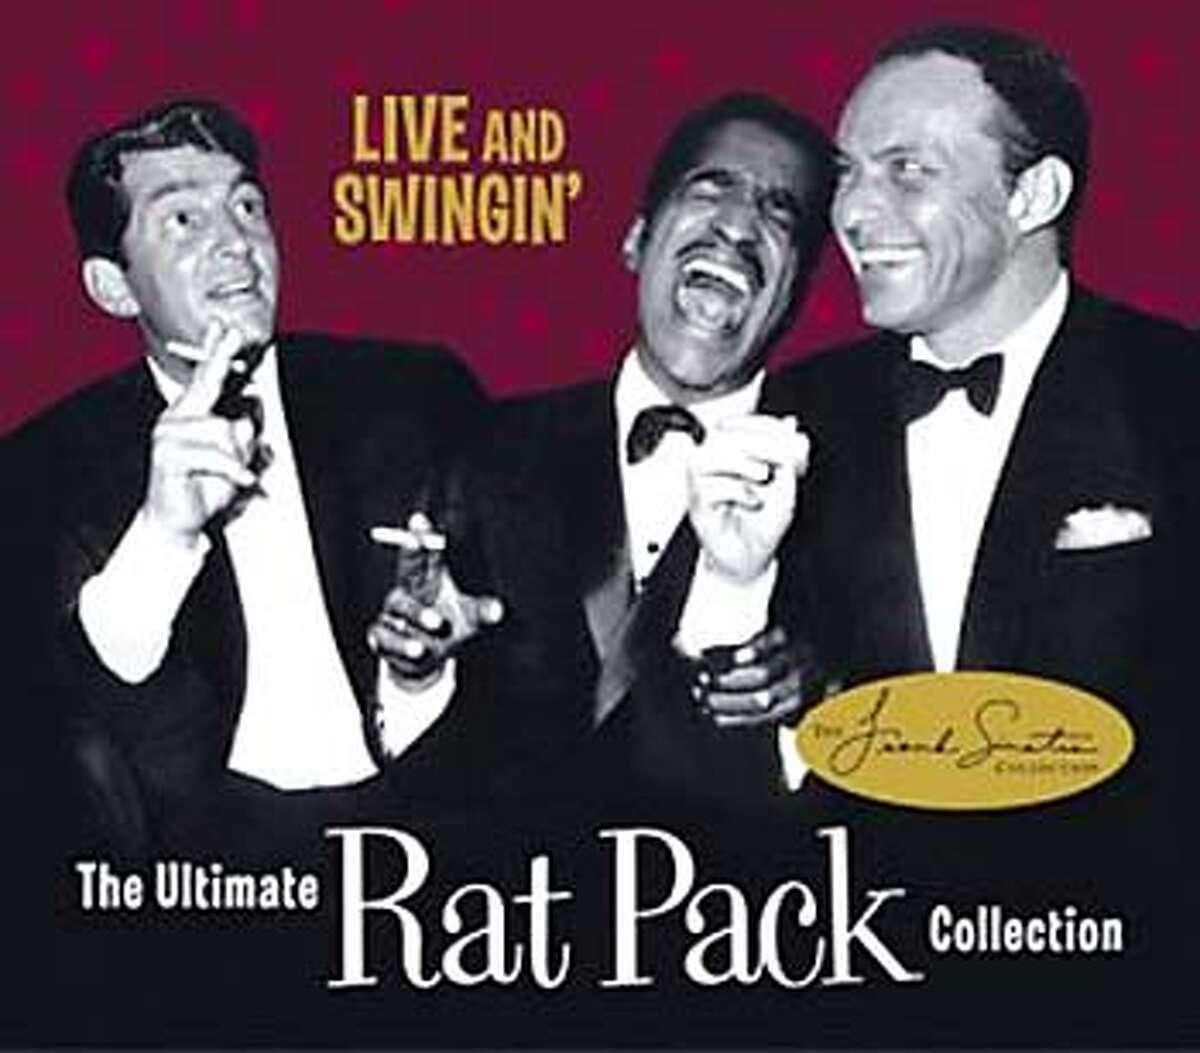 For POPCDS12, datebook ; CD cover art for The Ultimate Rat Pack Collection ; Live and Swingin' ; on 9/16/03 in . / HO